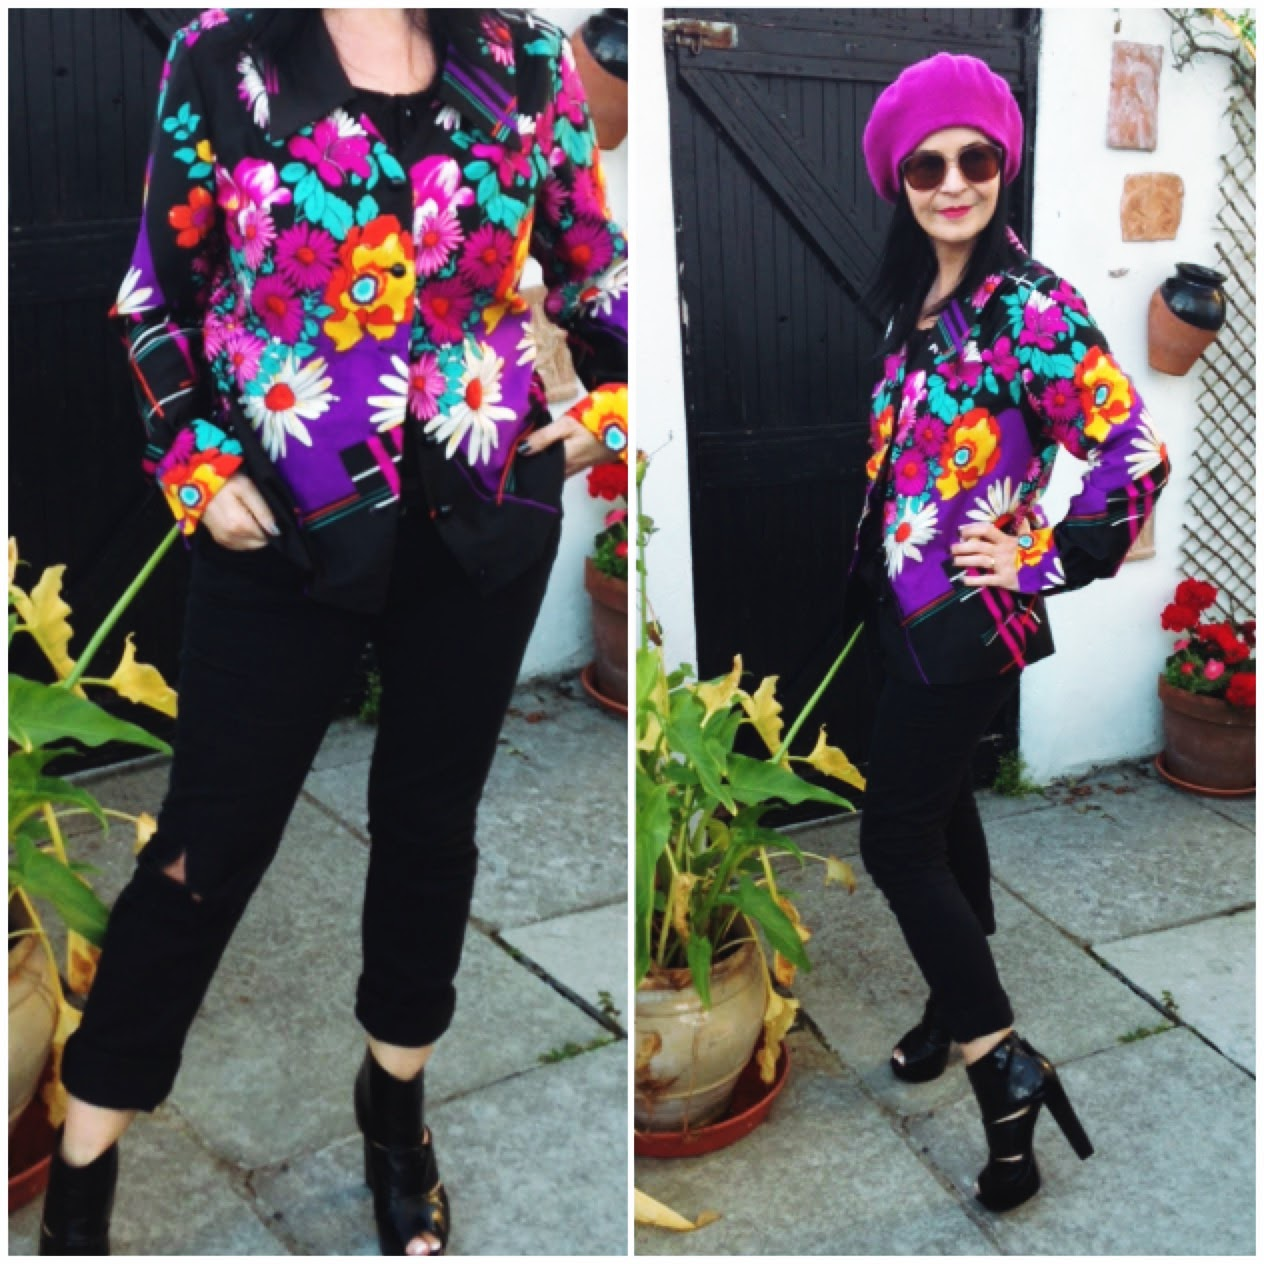 Vintage light jacket paired with dark skinnies and shoe boots give this colourful look a slimmed down effect. Look is completed with my raspberry beret!